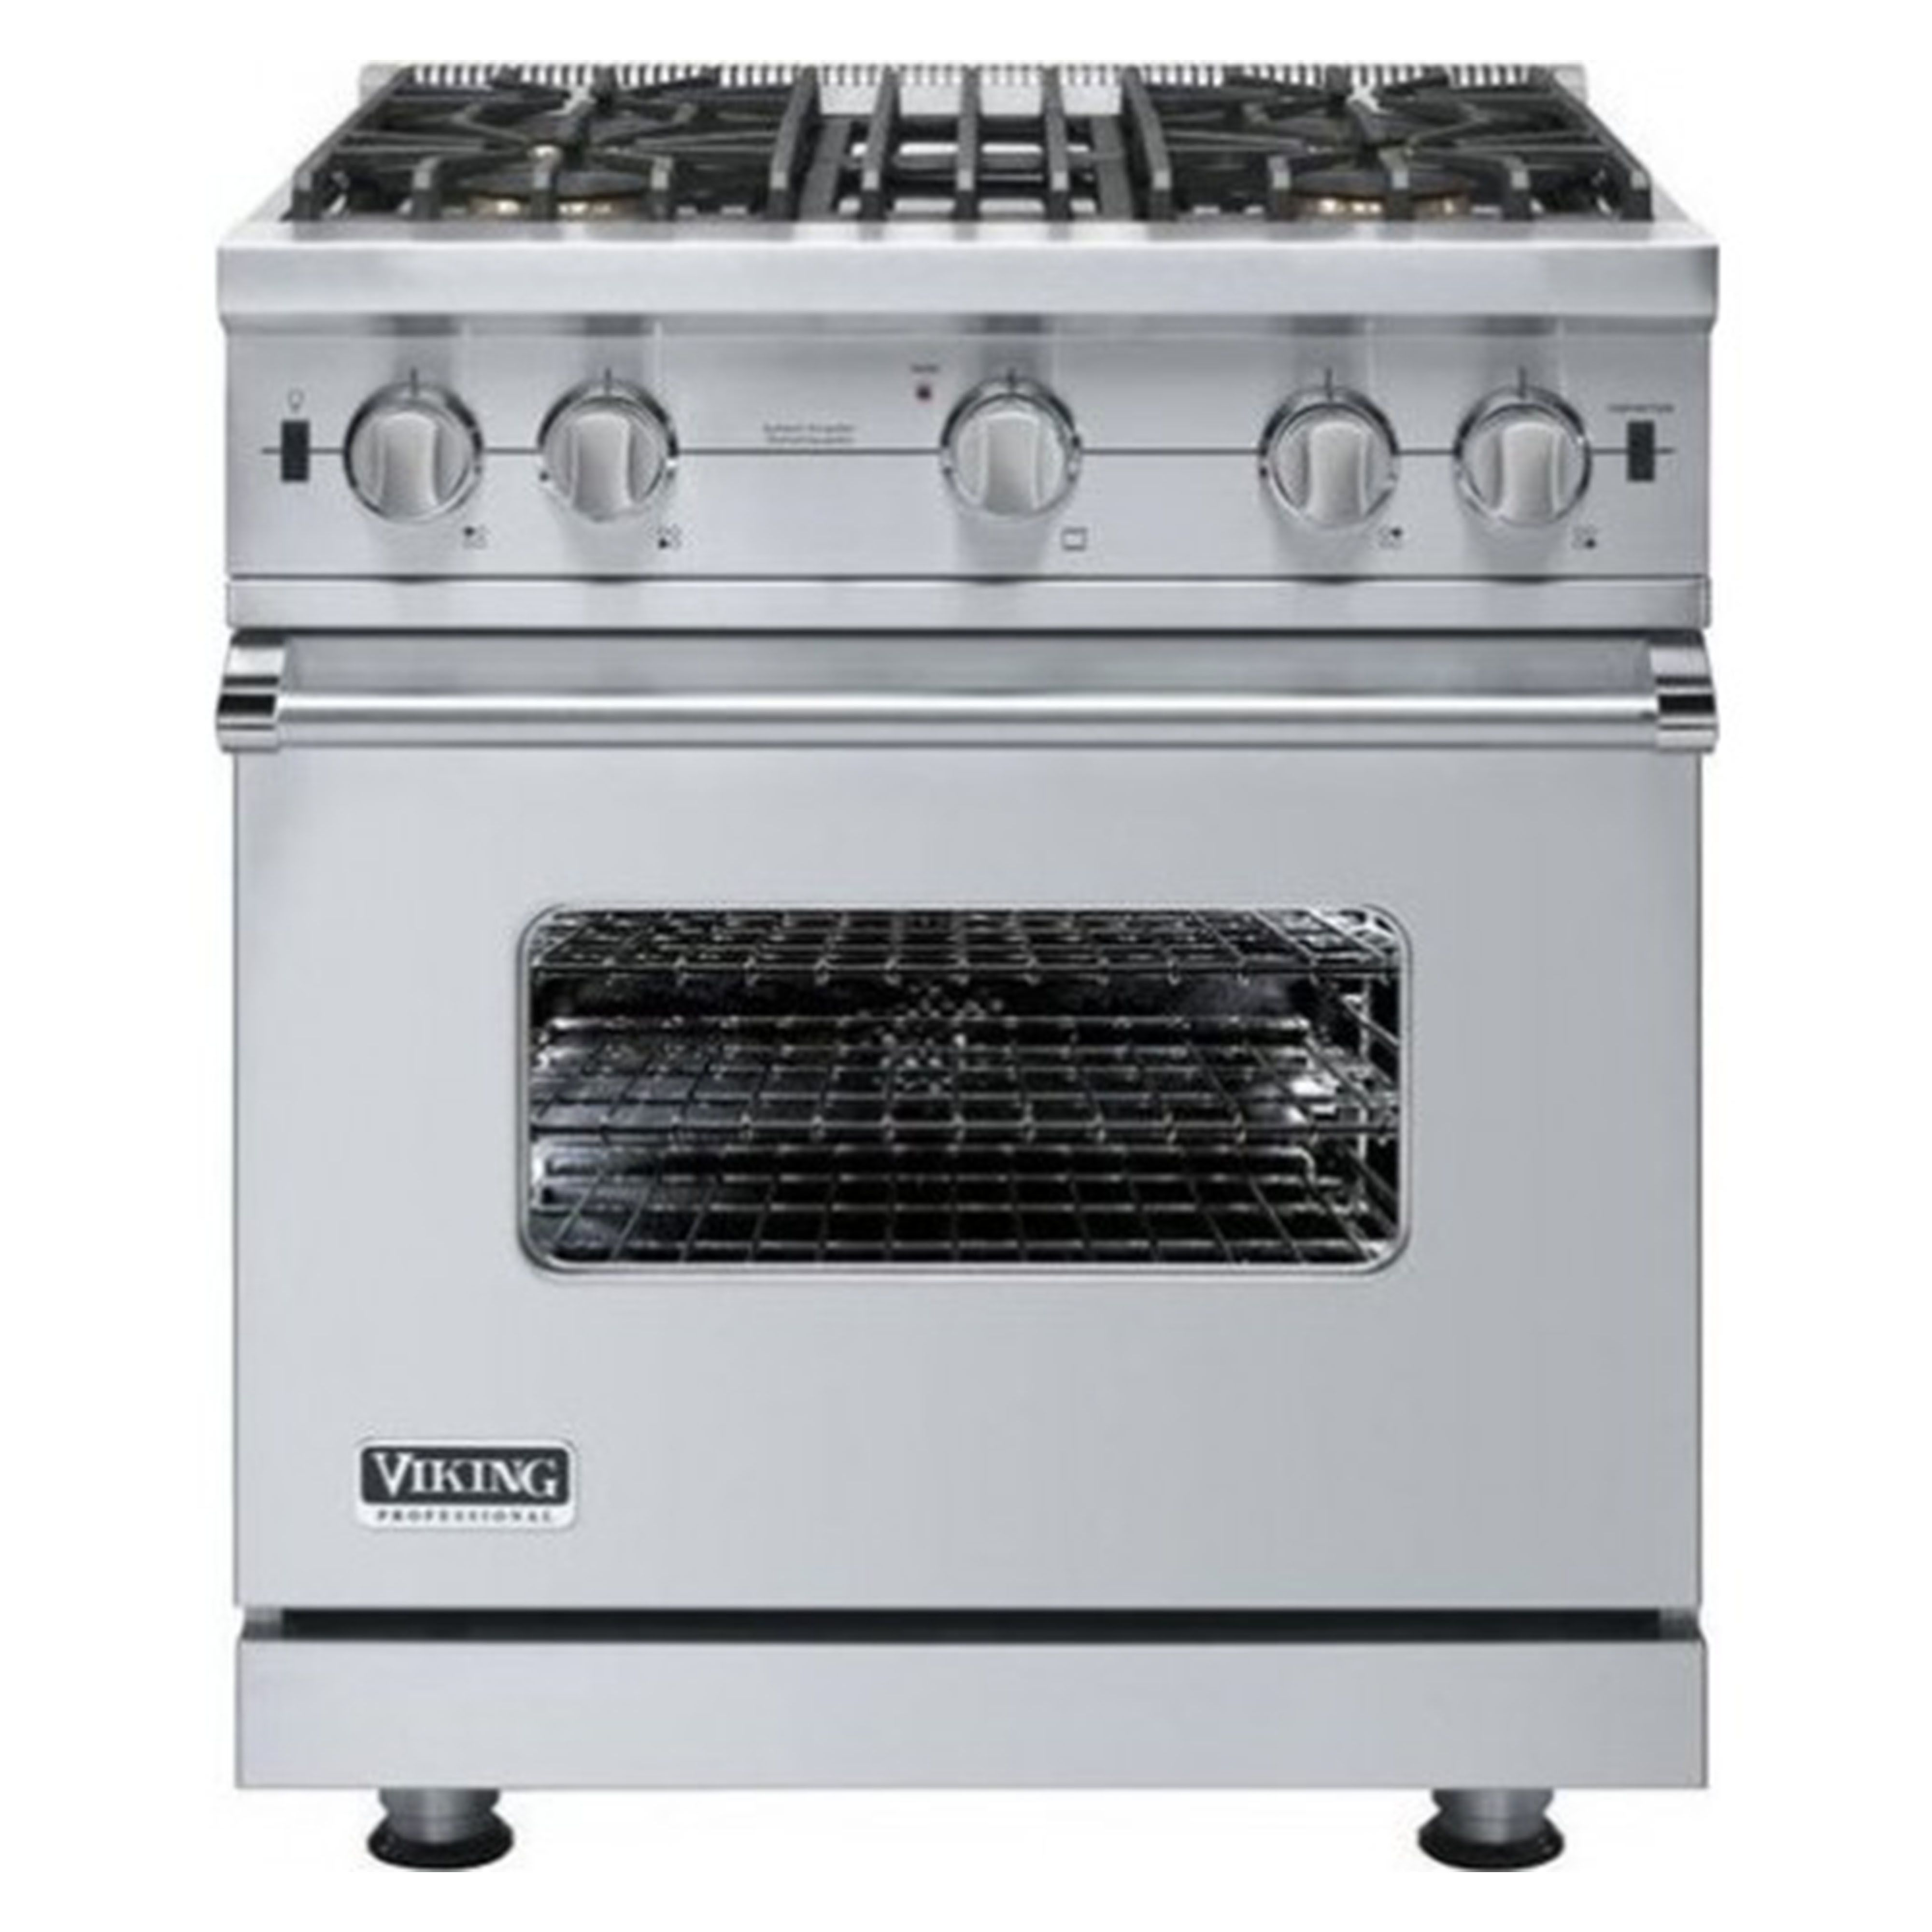 """Viking 30"""" Open Burner Gas Range #VGIC53014BSS Review, Price and ..."""